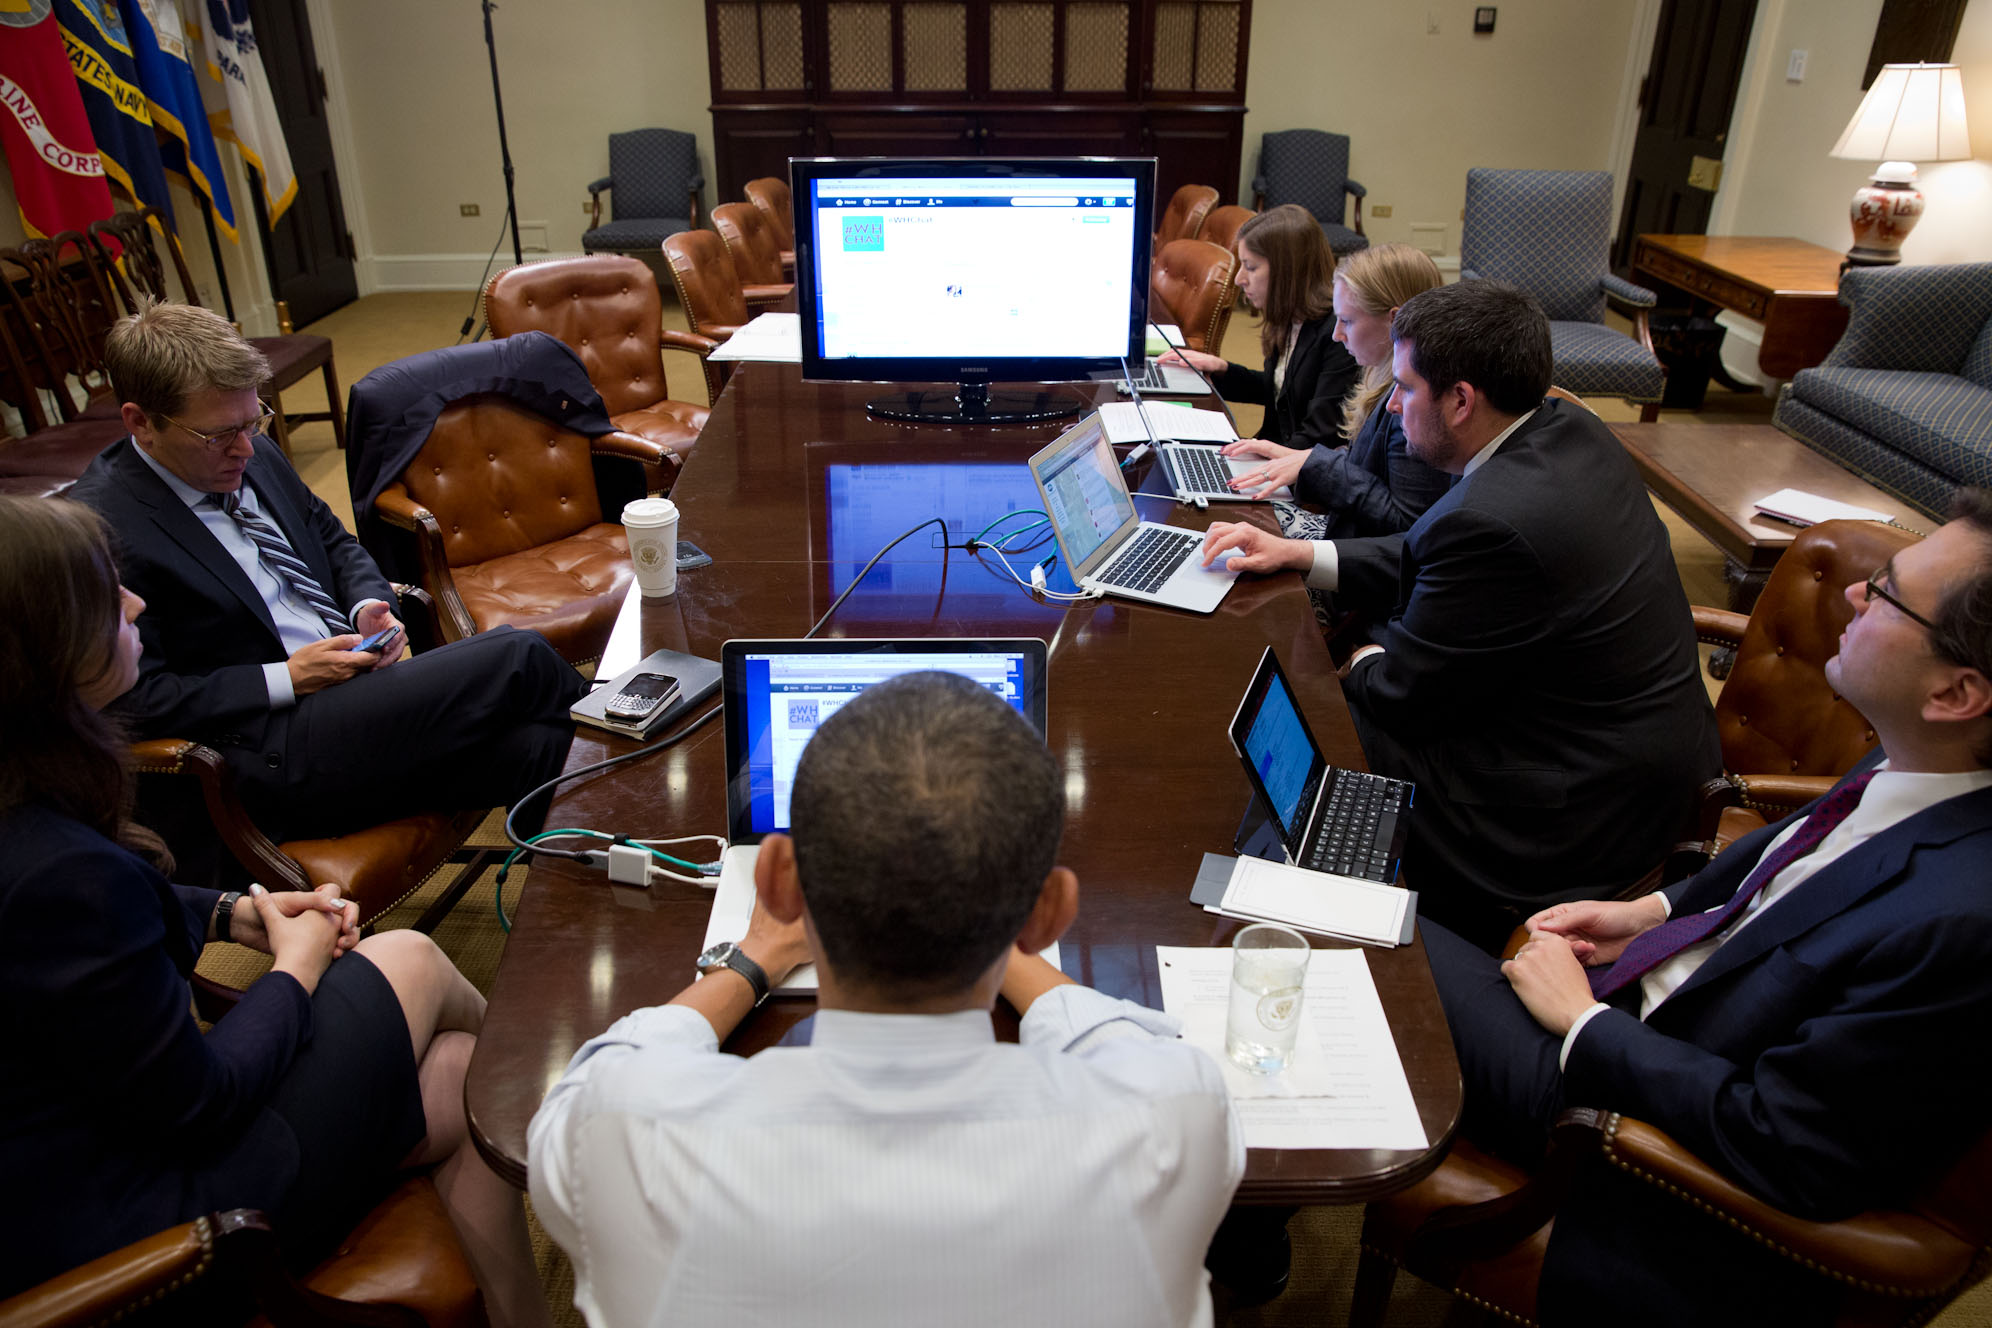 President Obama Participates In A Live Twitter Q&A